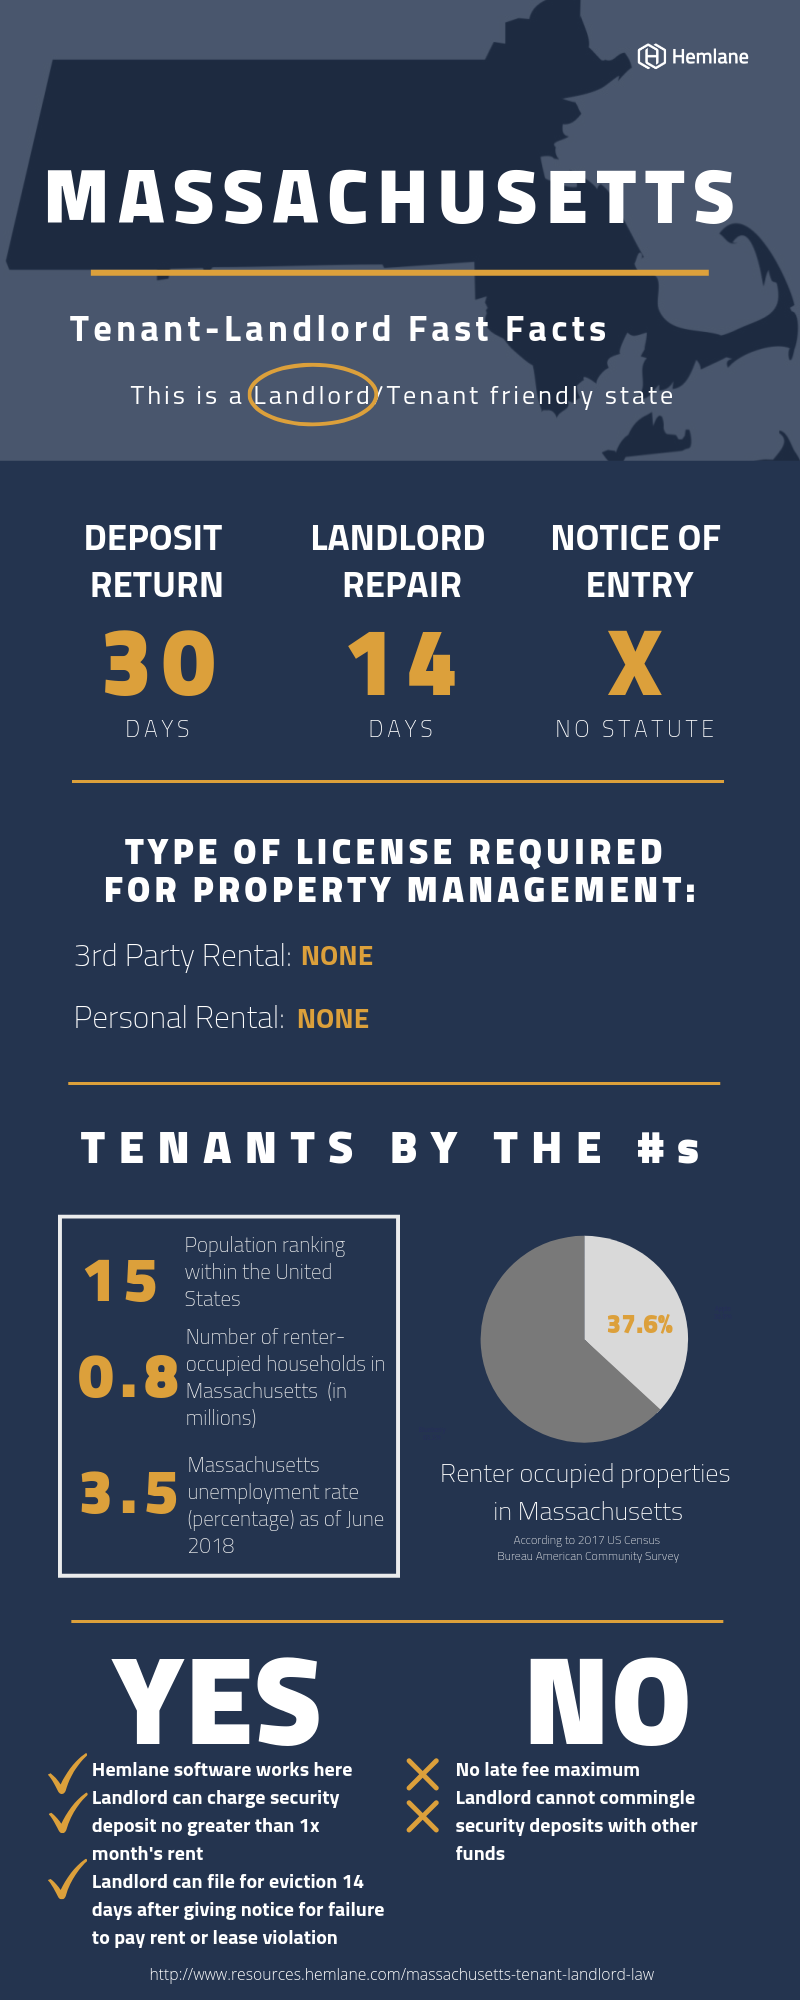 Massachusetts-Tenant-Landlord-Law-Fast-Facts